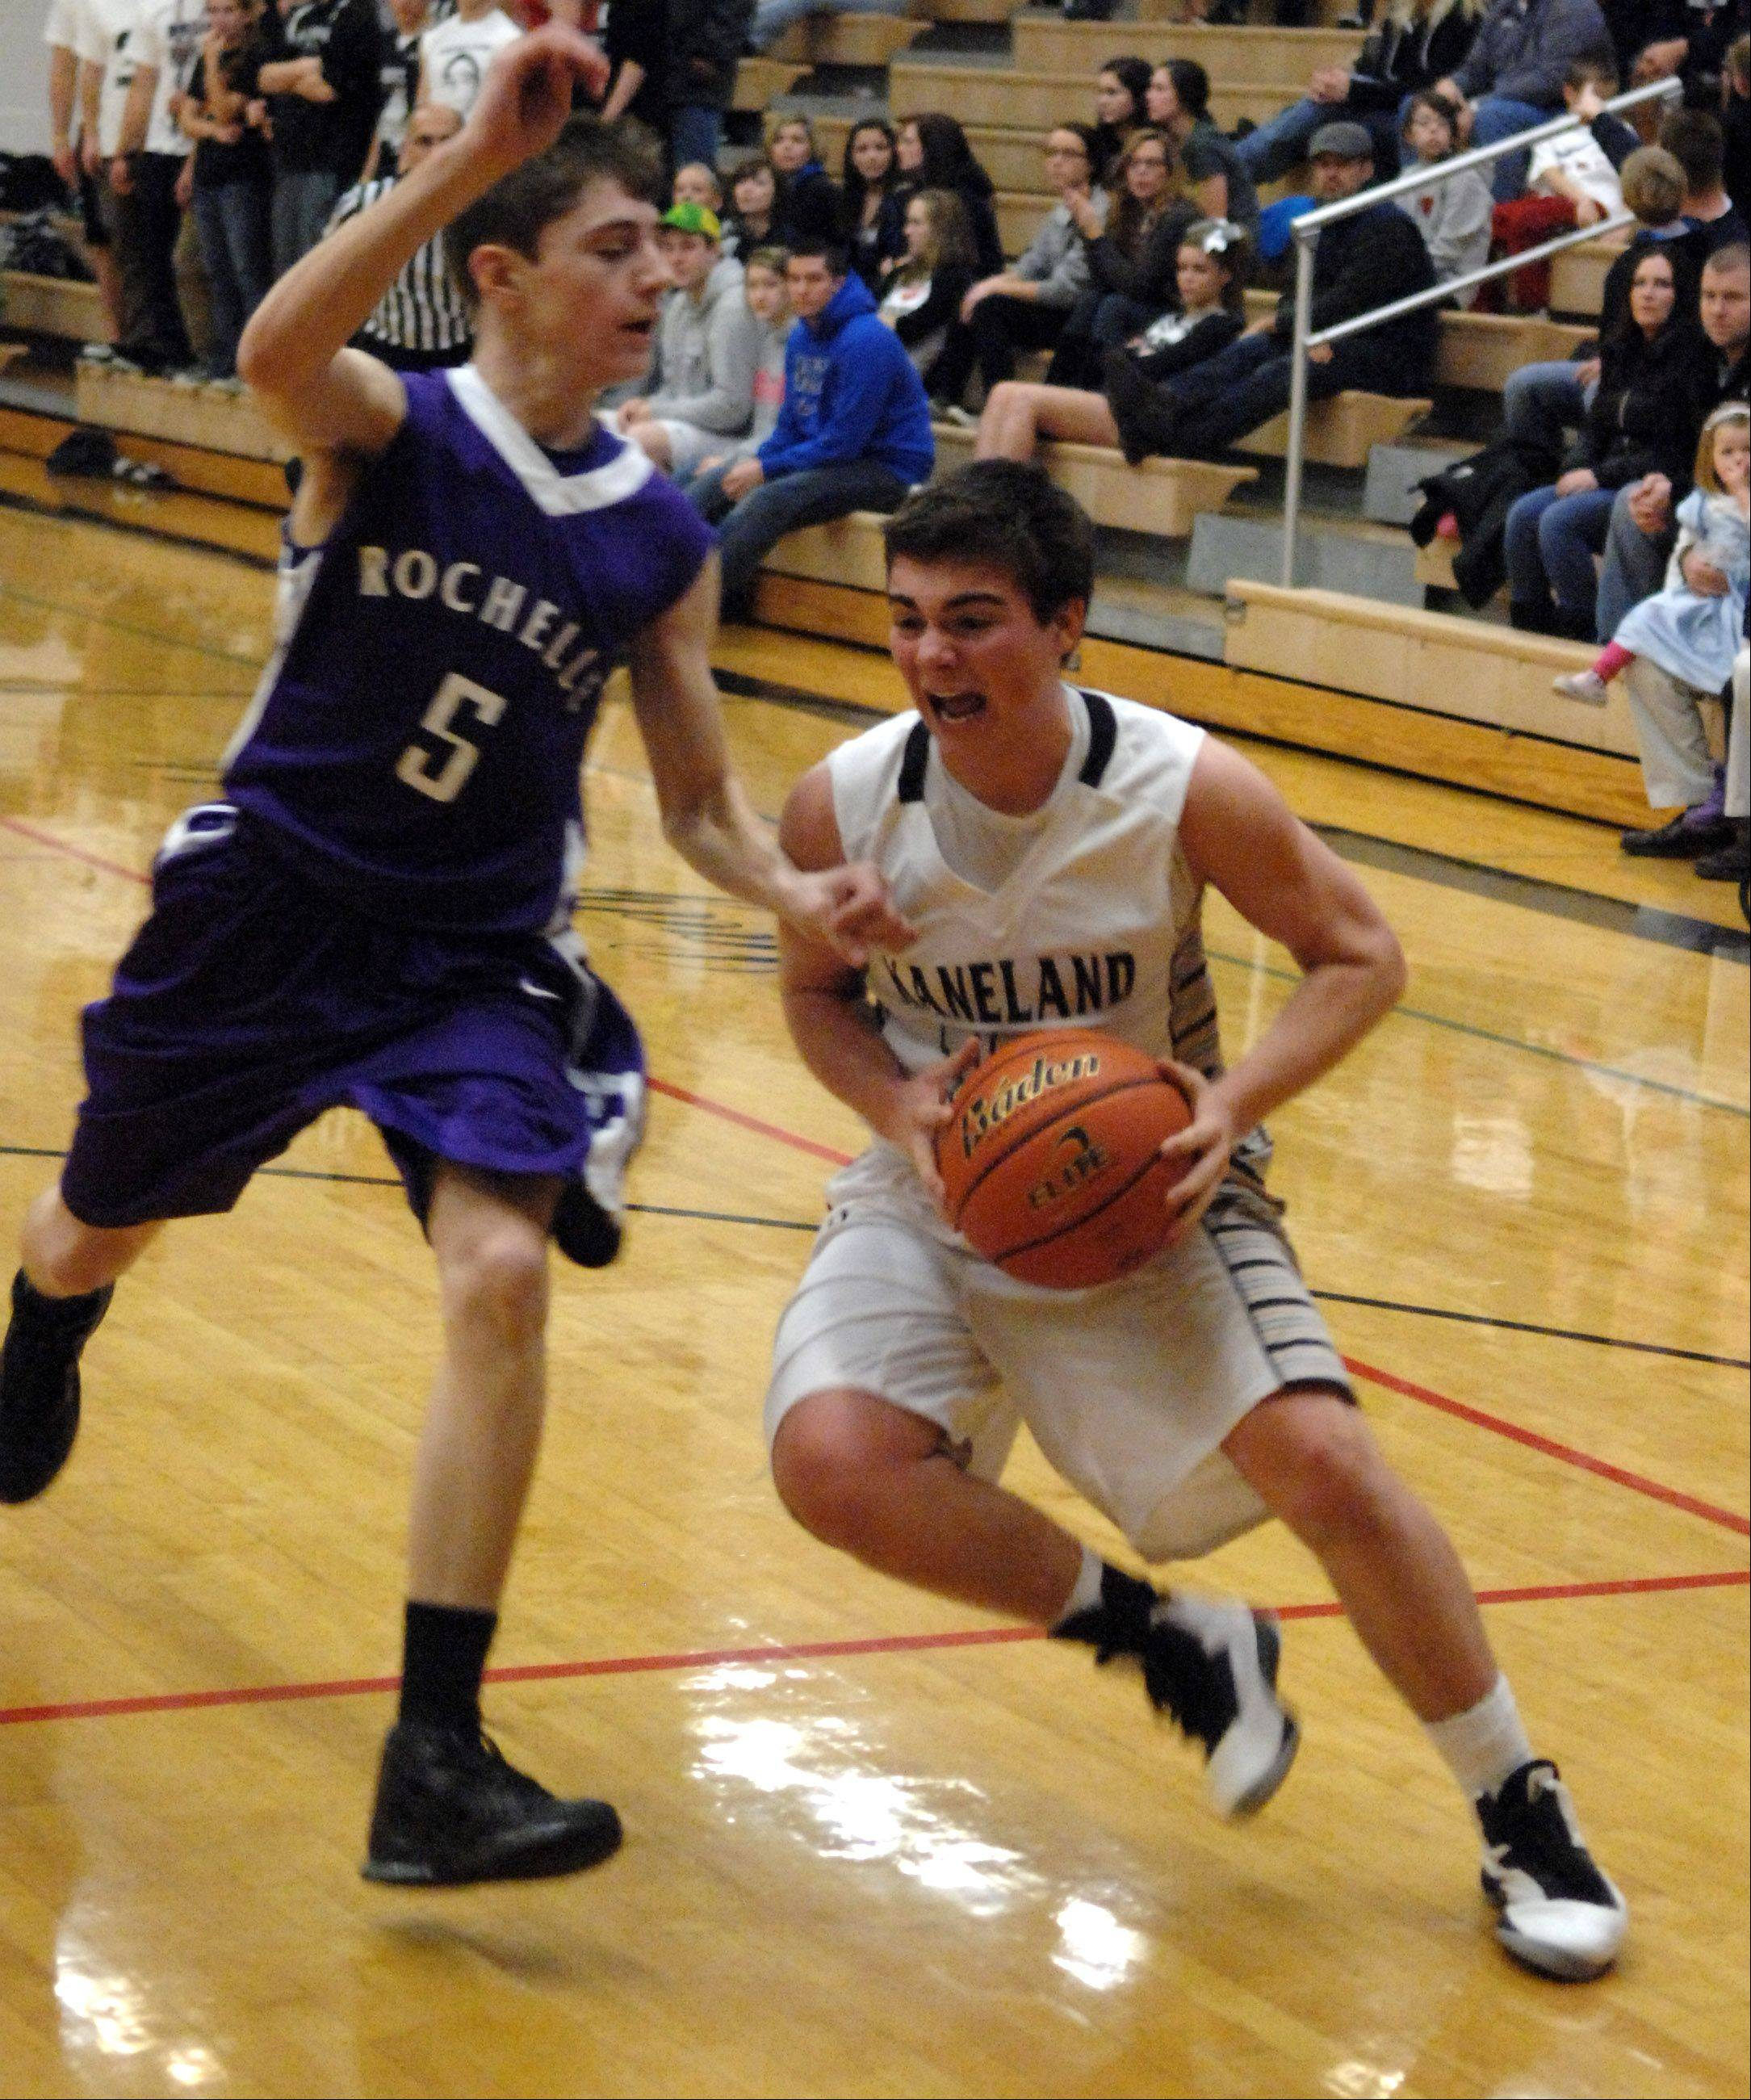 Images: Rochelle vs. Kaneland, boys basketball